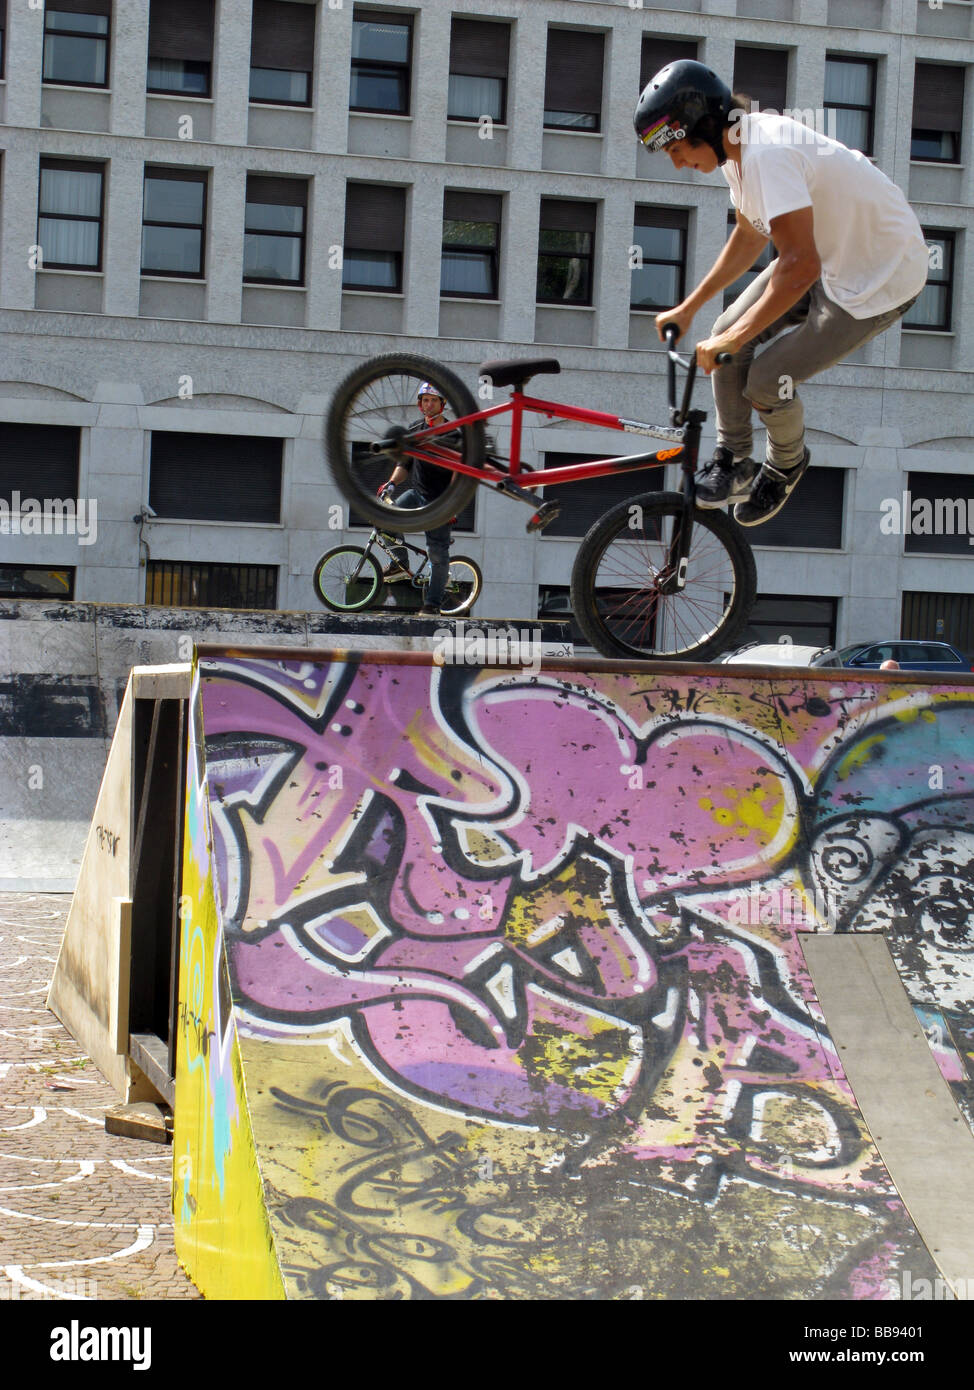 person doing bike stunts on ramp at event outdoors Stock Photo